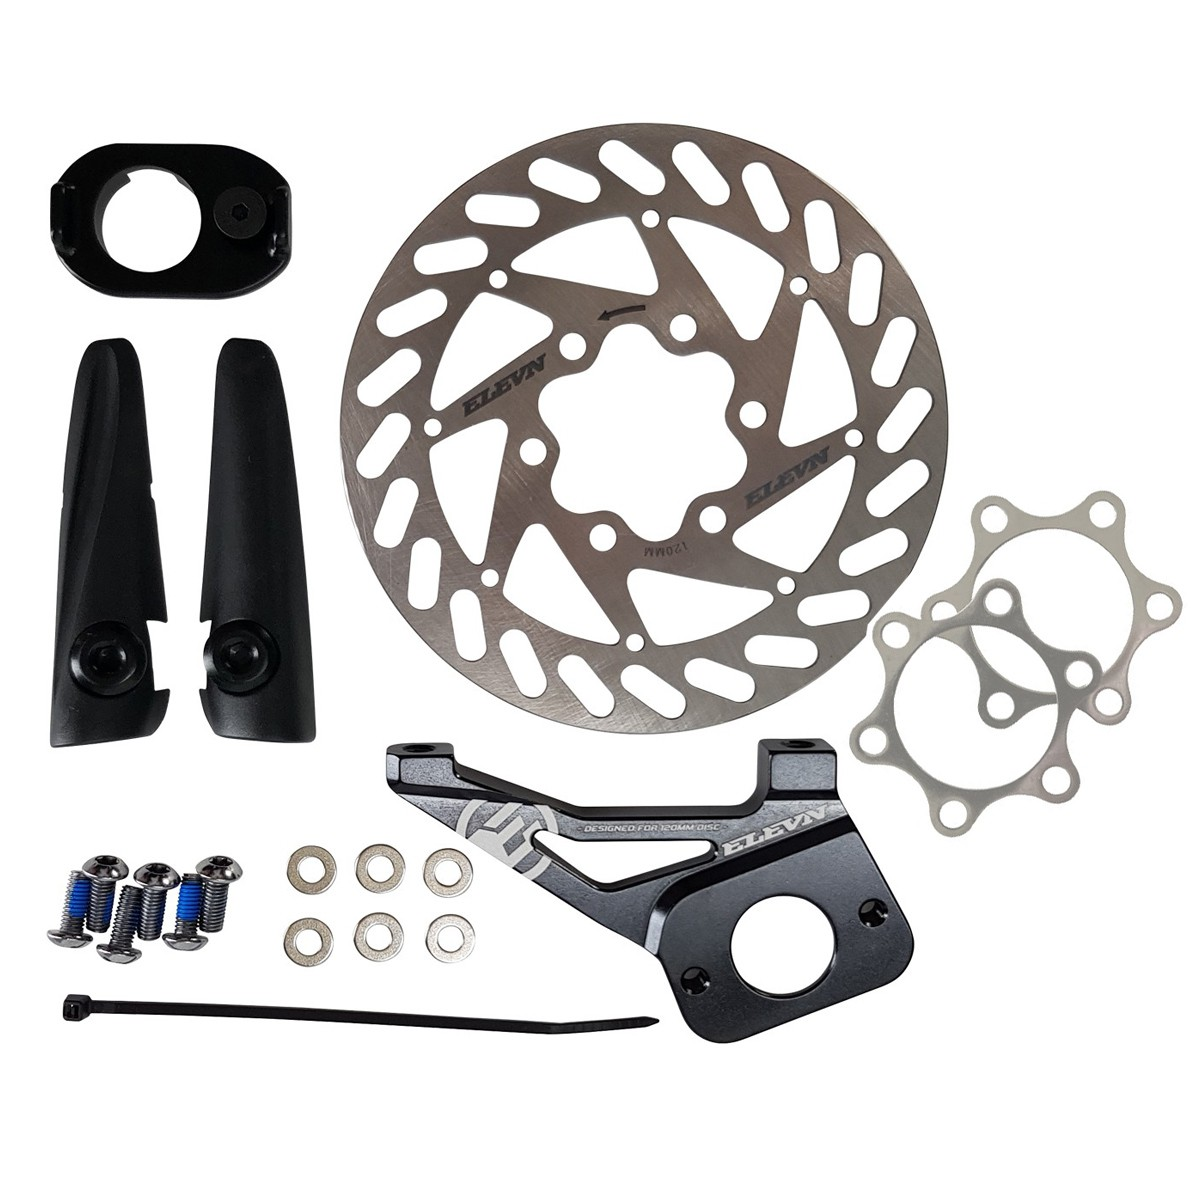 DISC KIT 120MM ELEVN - CHASE ACT 1.0 20MM AXLE